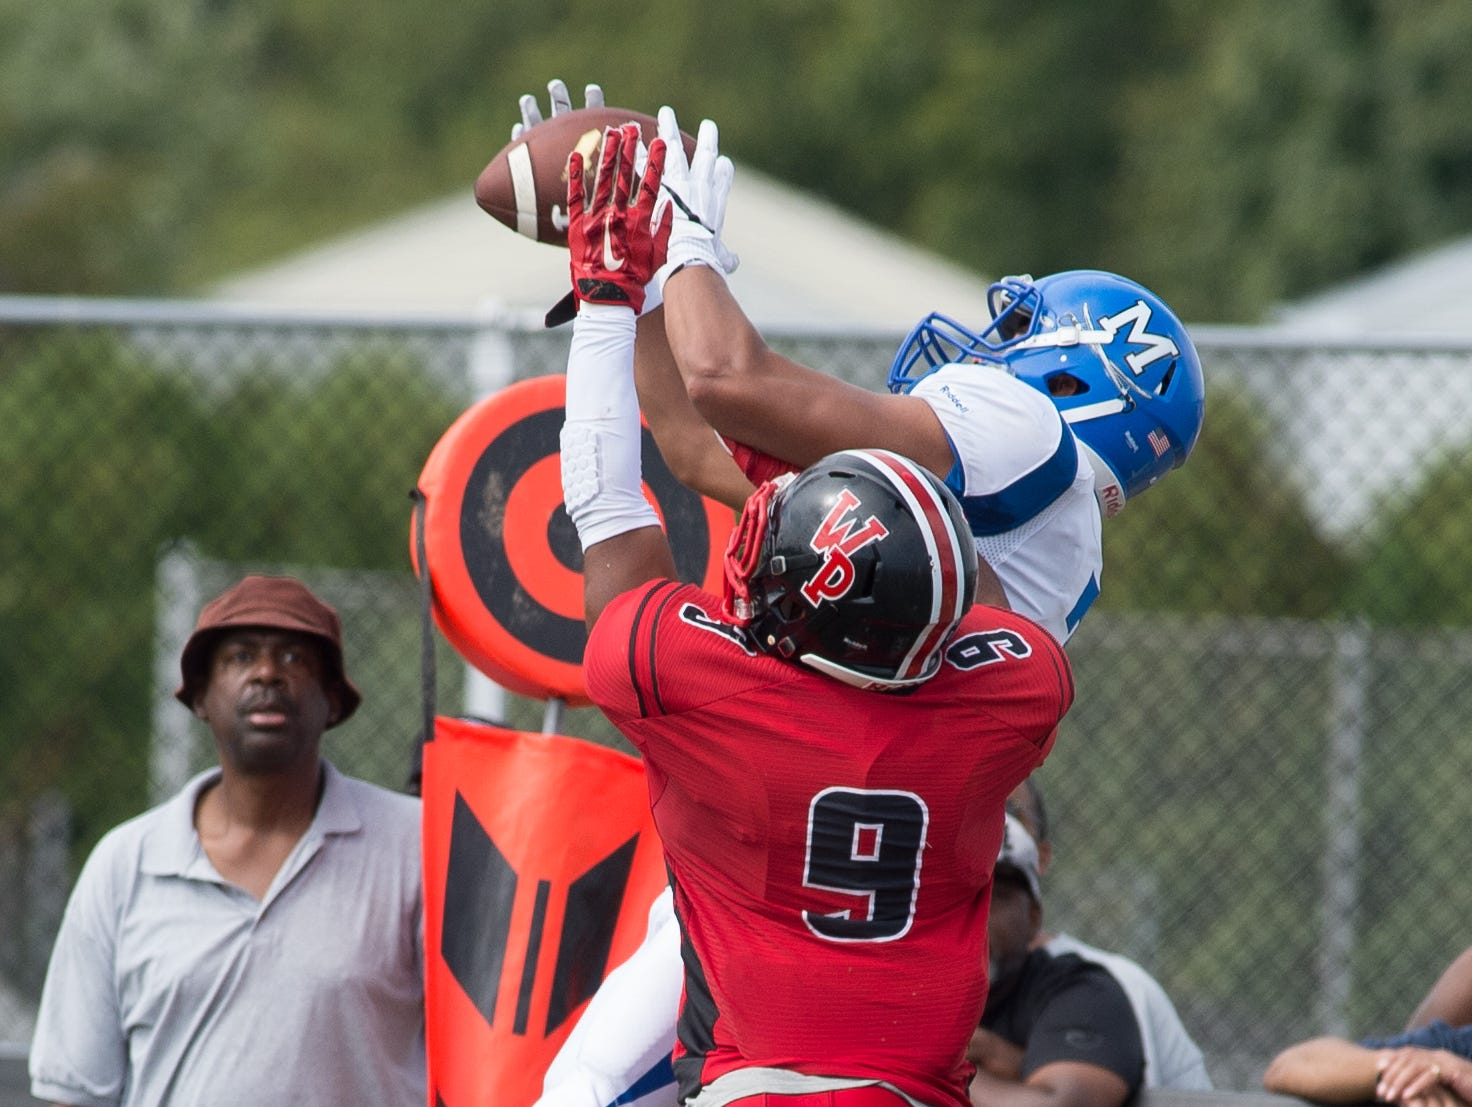 Middletown's Kenneth Edelin (7) catches a ball near the goal line as William Penn's Isaiah Gaynor (9) defends.